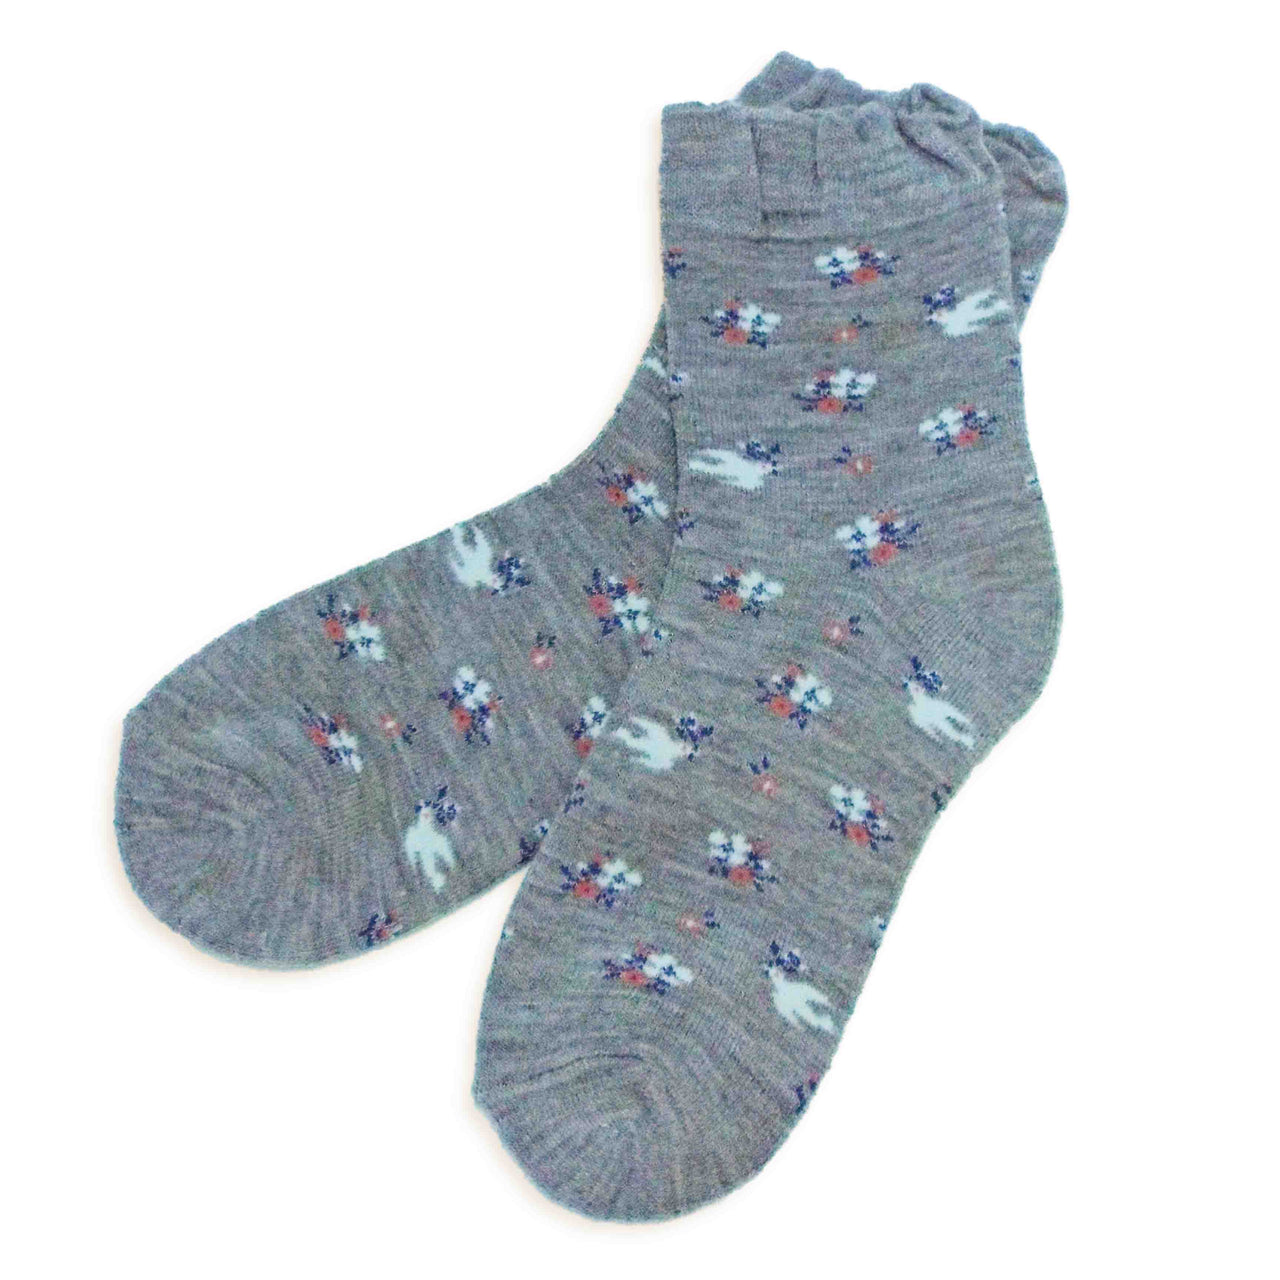 Soft Knit Crew Socks | Dove/Floral | Gray - CHERRYSTONE by MARKET TO JAPAN LLC